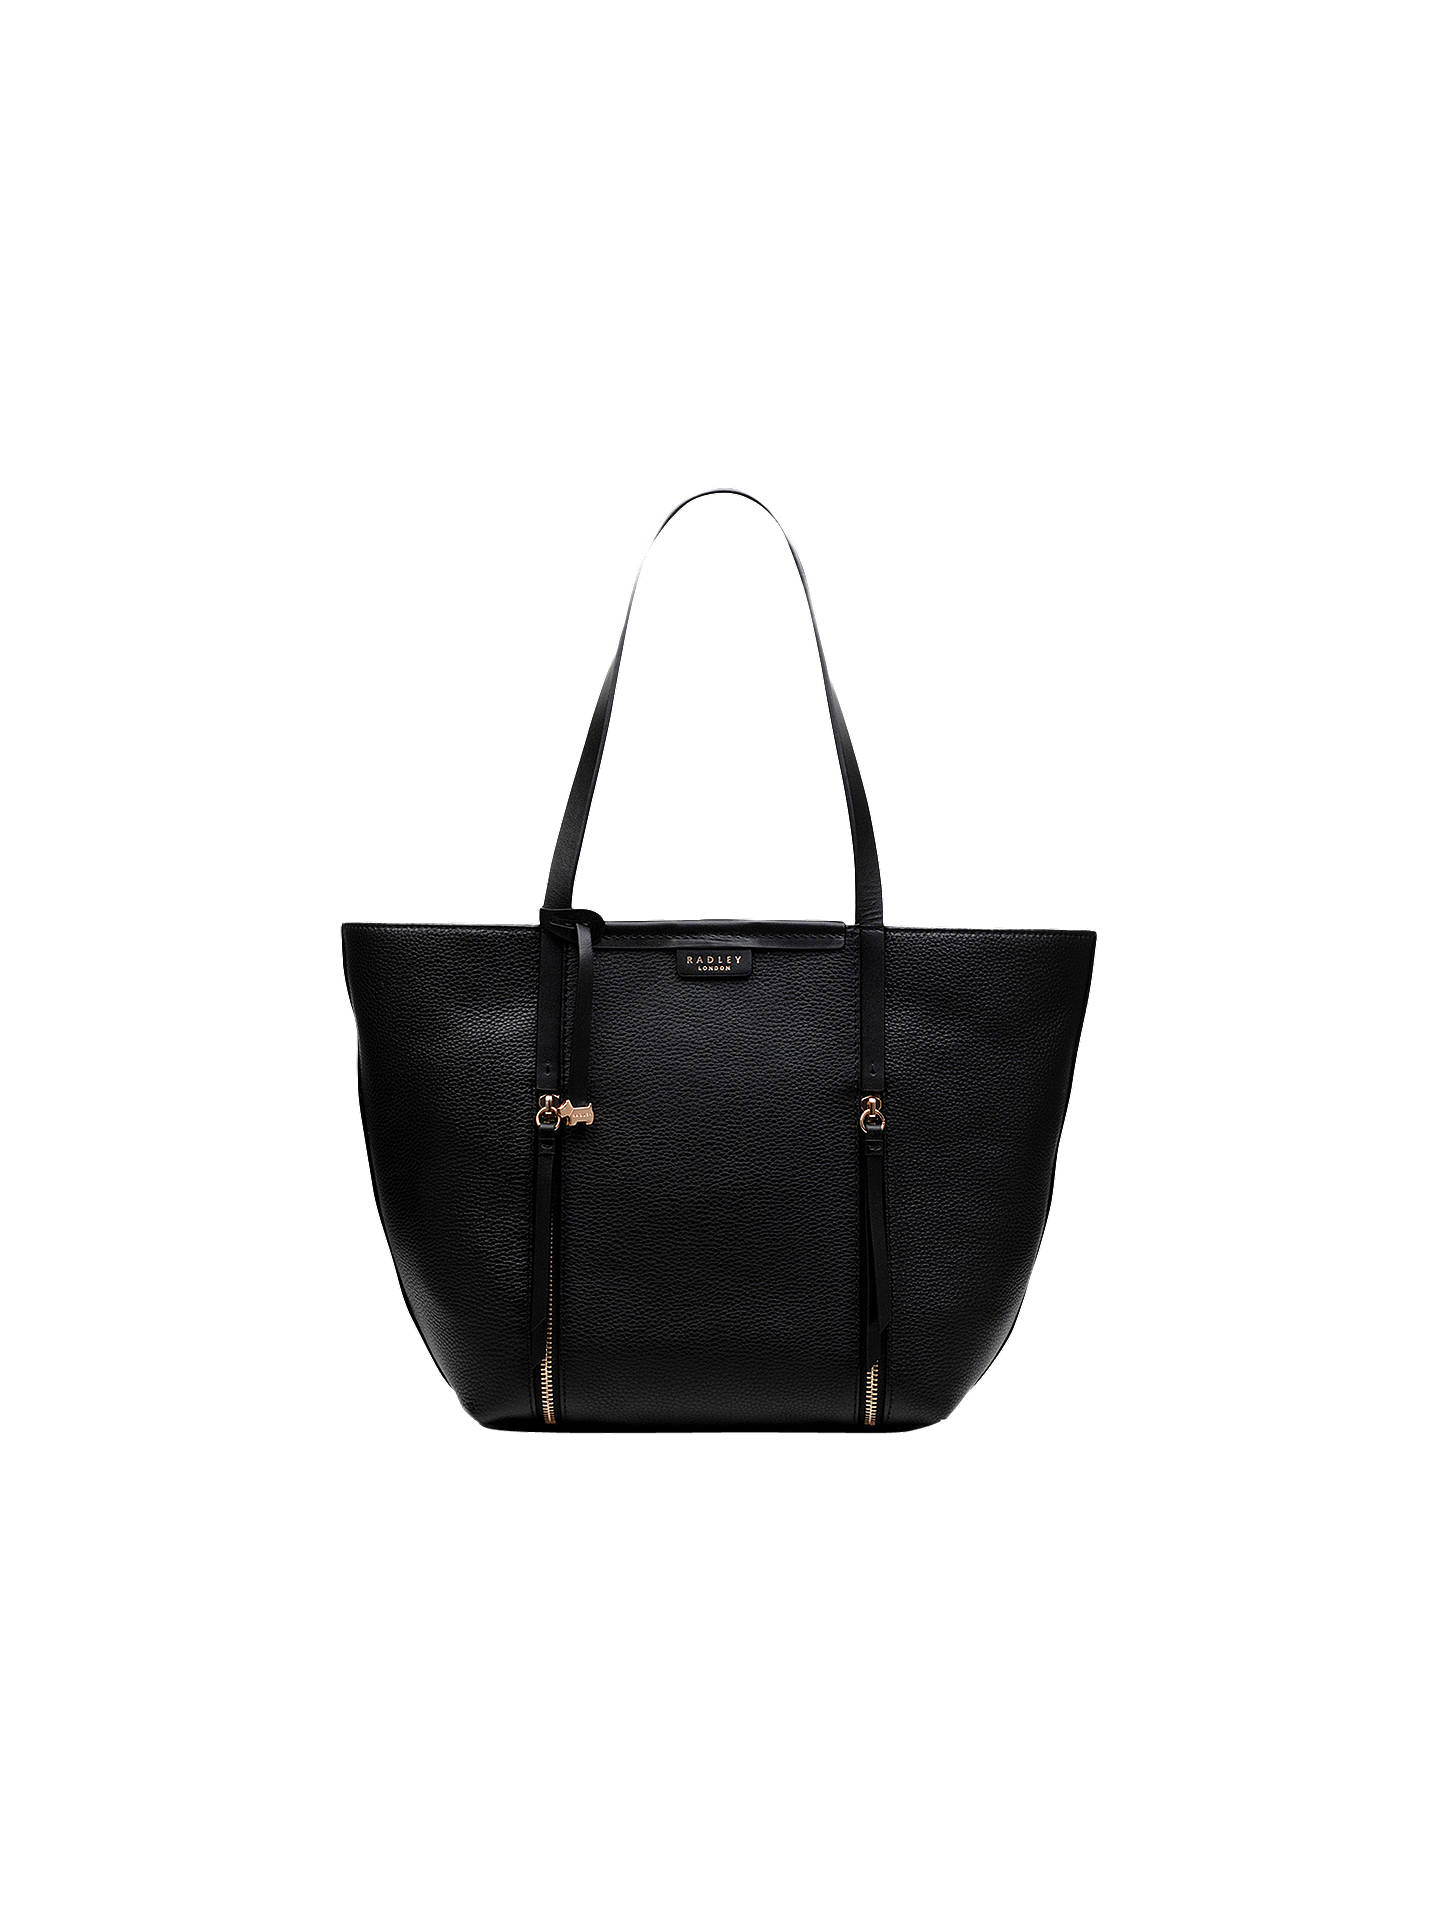 Radley Penhurst Leather Large Tote Bag Black Online At Johnlewis